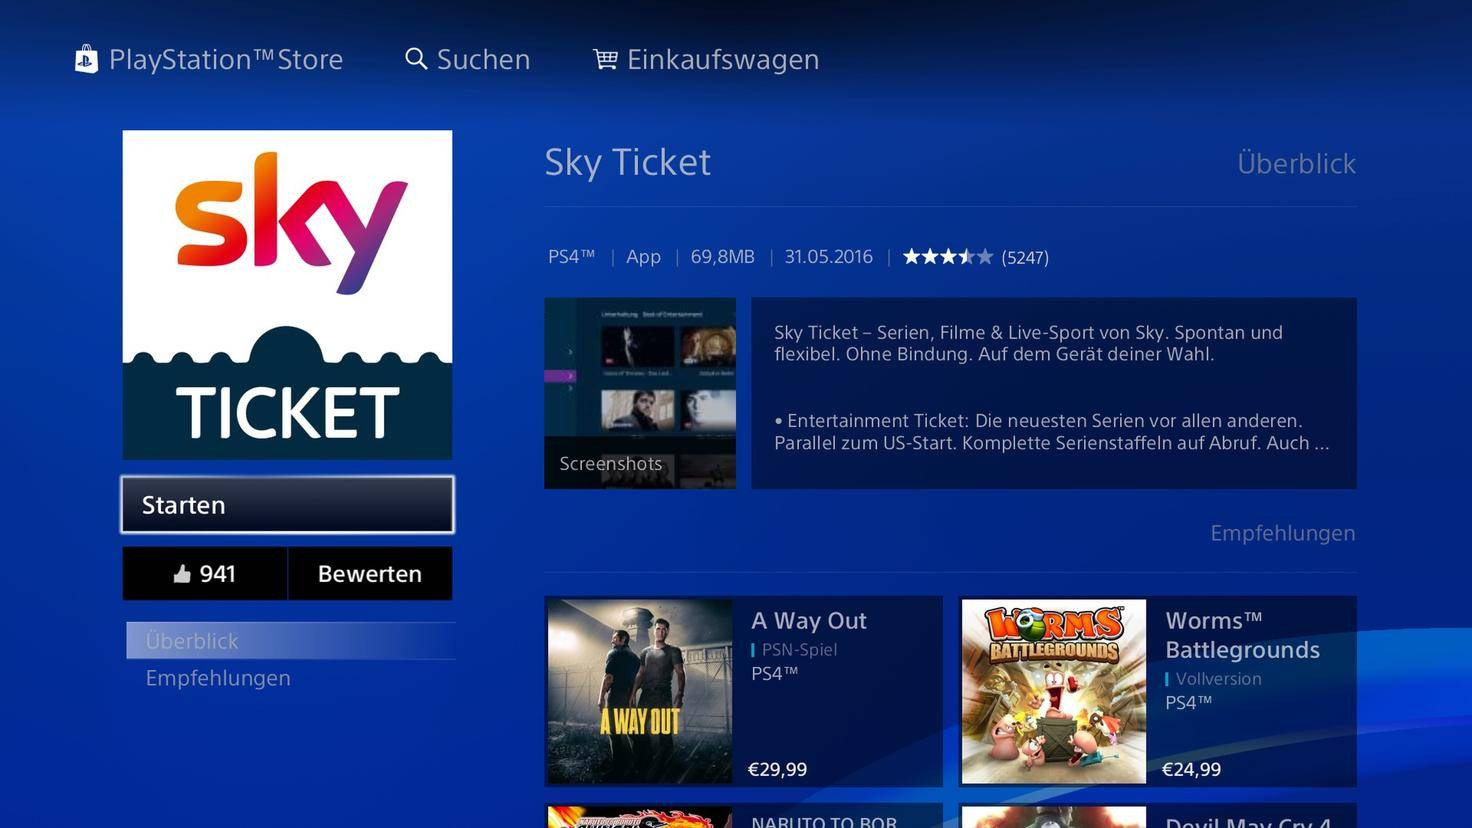 PlayStation Sky Ticket 4